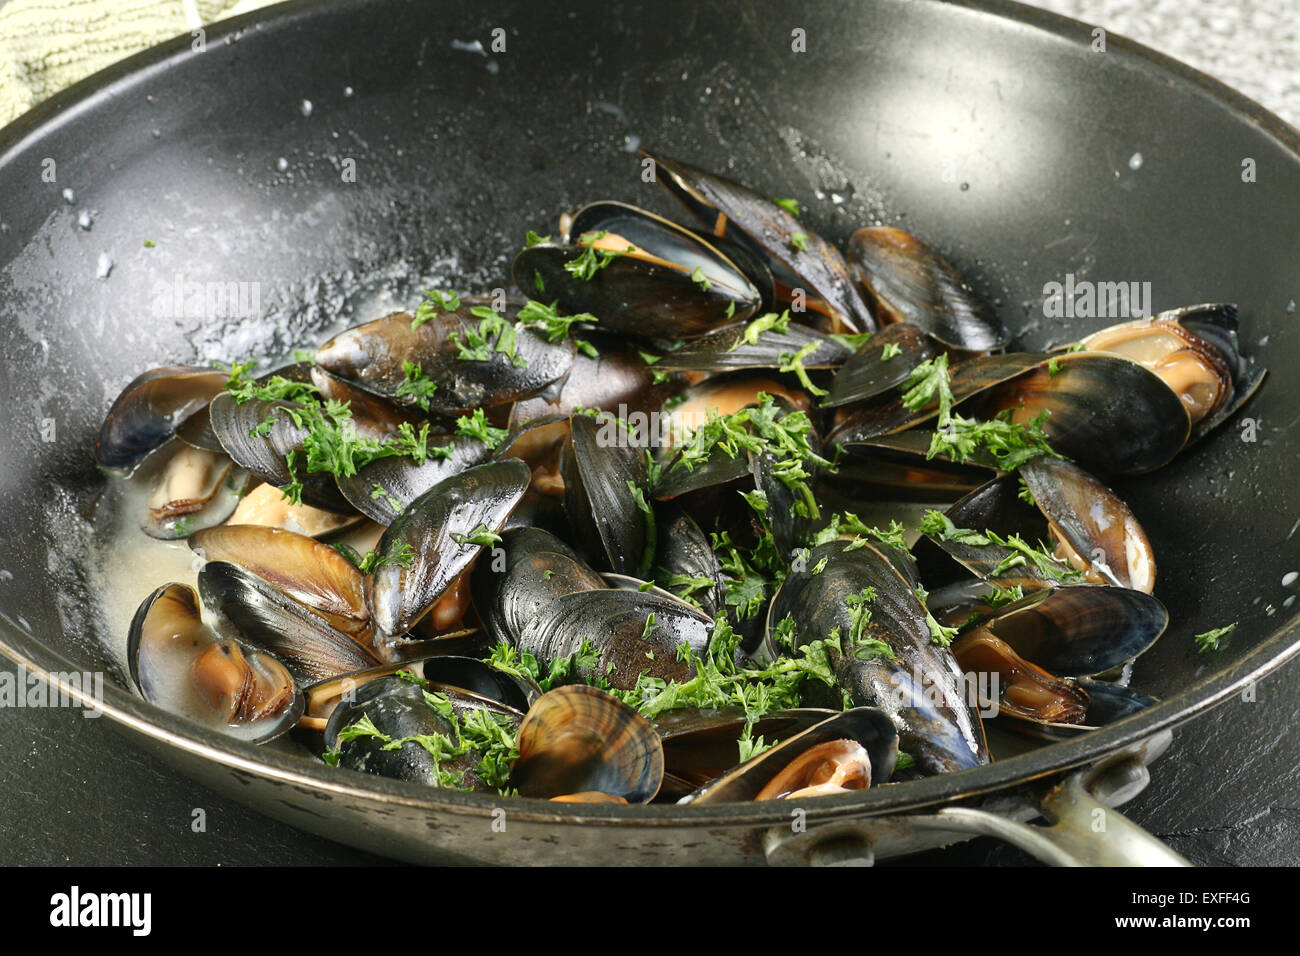 mussels cooked in a pan with white wine sauce - Stock Image